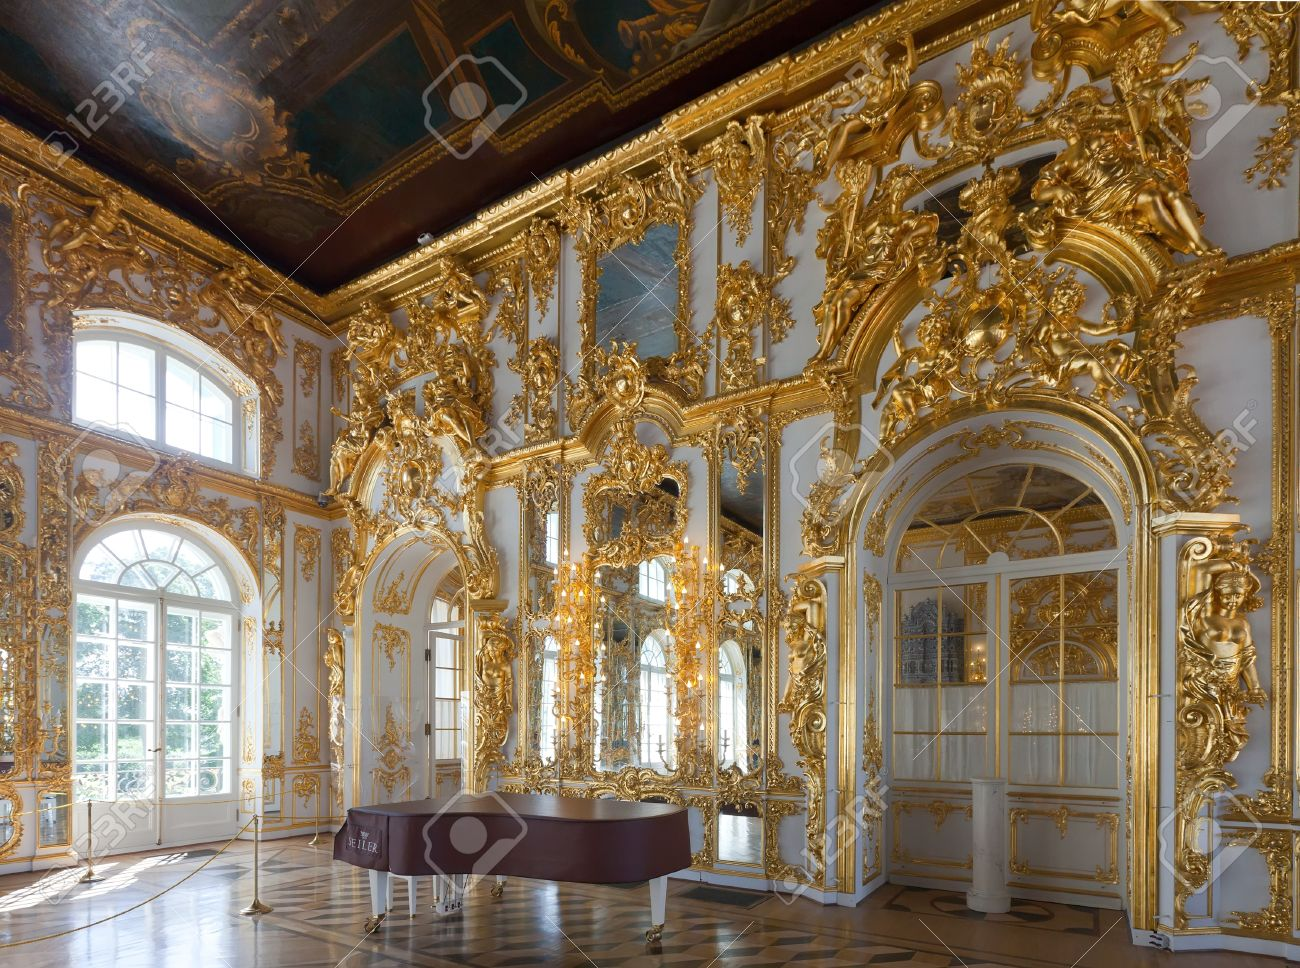 ST PETERSBURG, RUSSIA - AUGUST 2: Interior of Catherine Palace